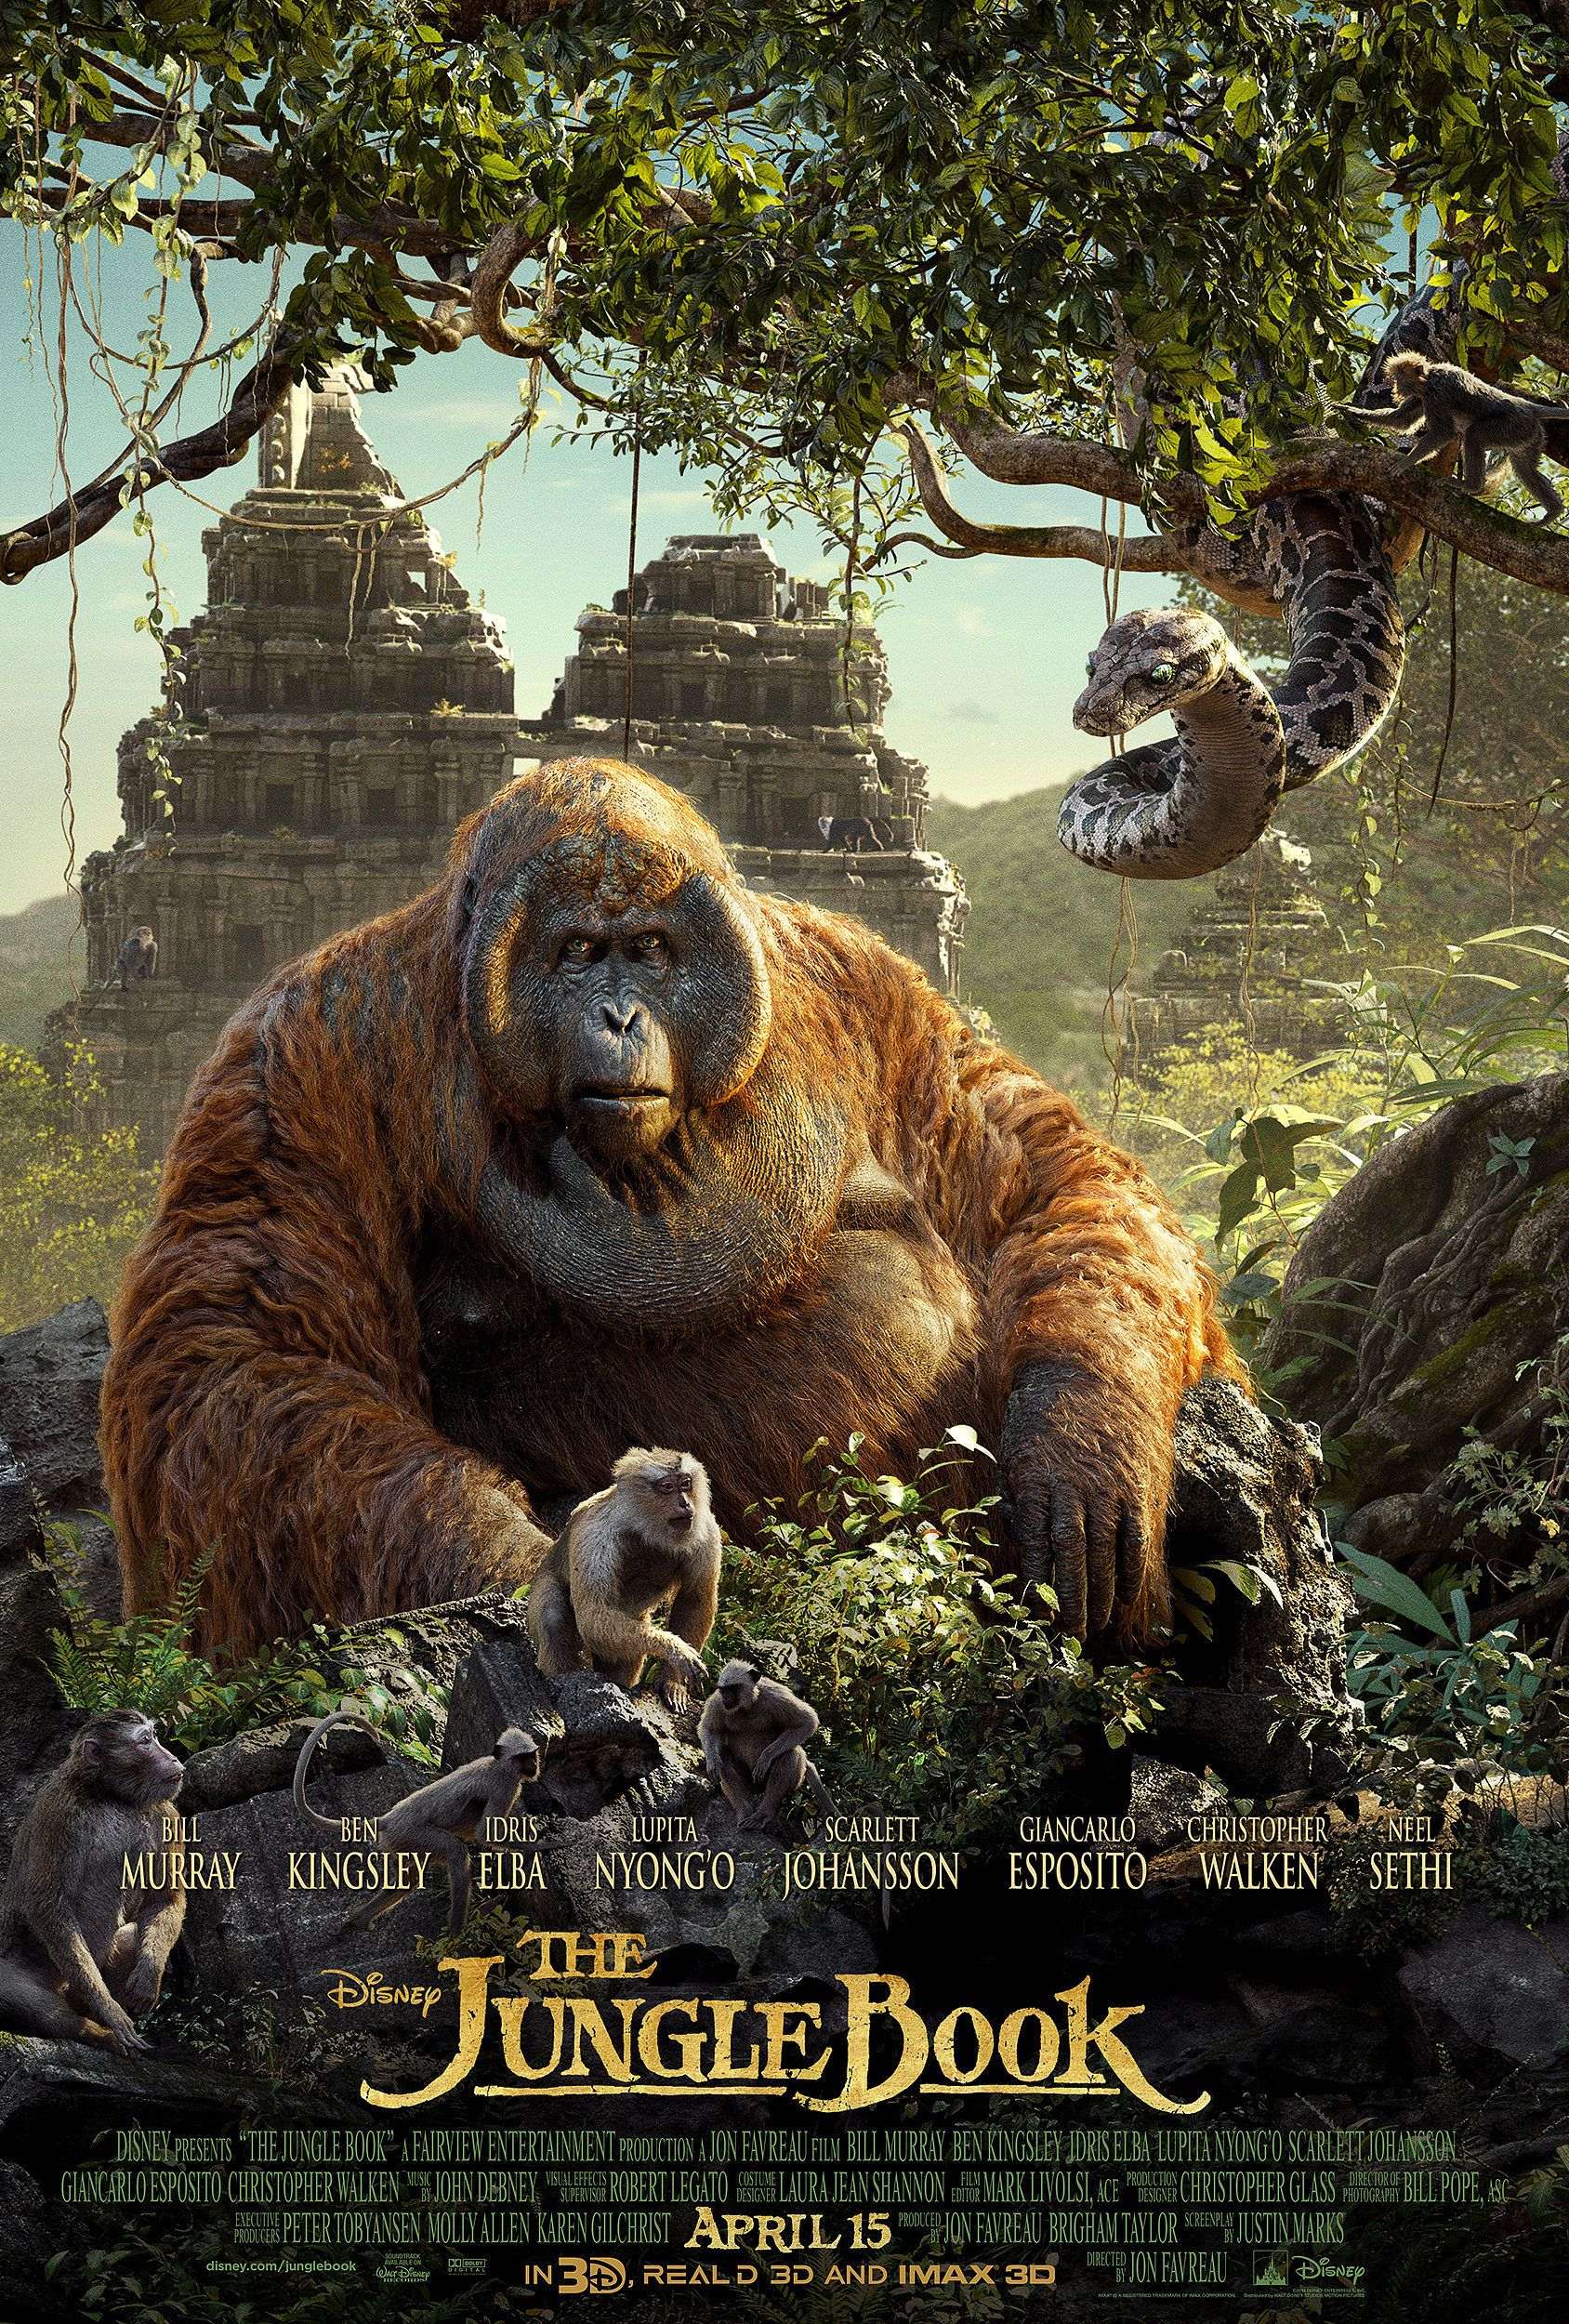 The jungle book movie poster its stunning visuals have made it a huge success in